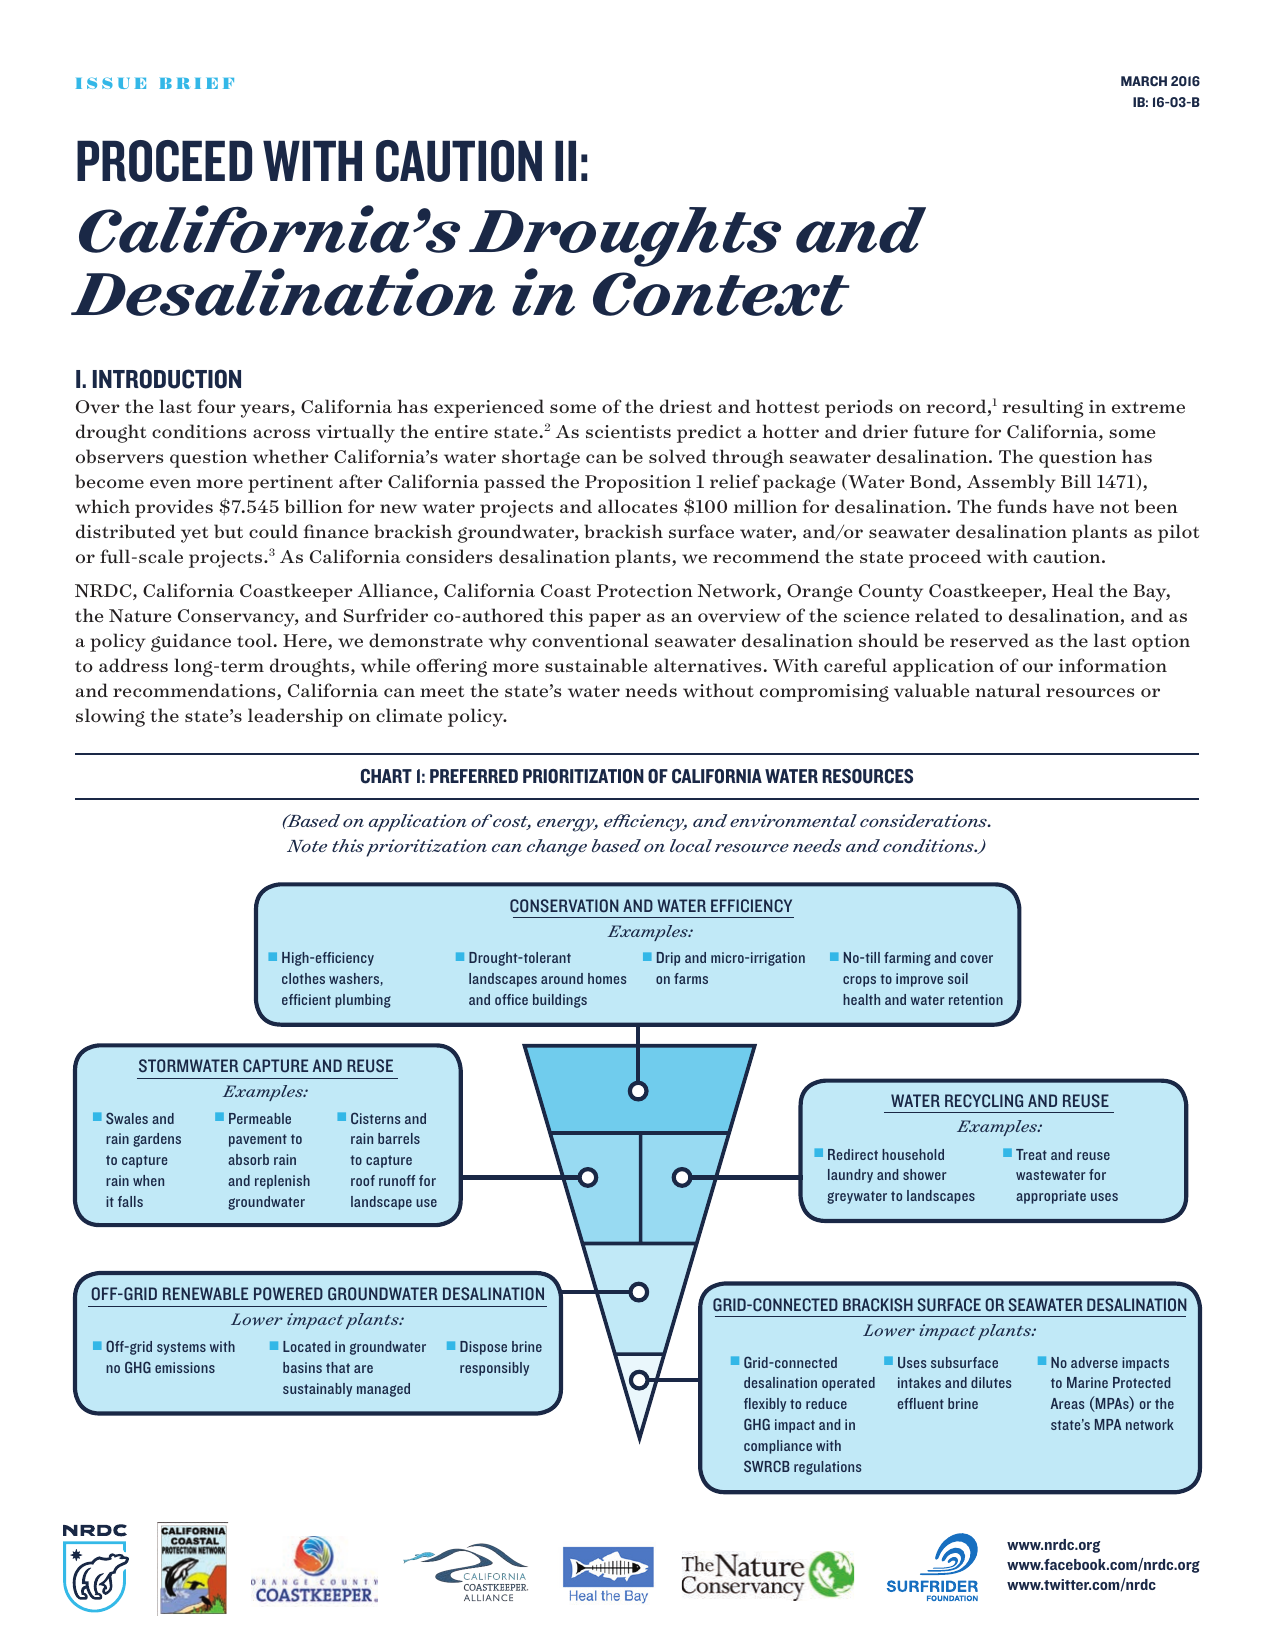 California`s Droughts and Desalination in Context